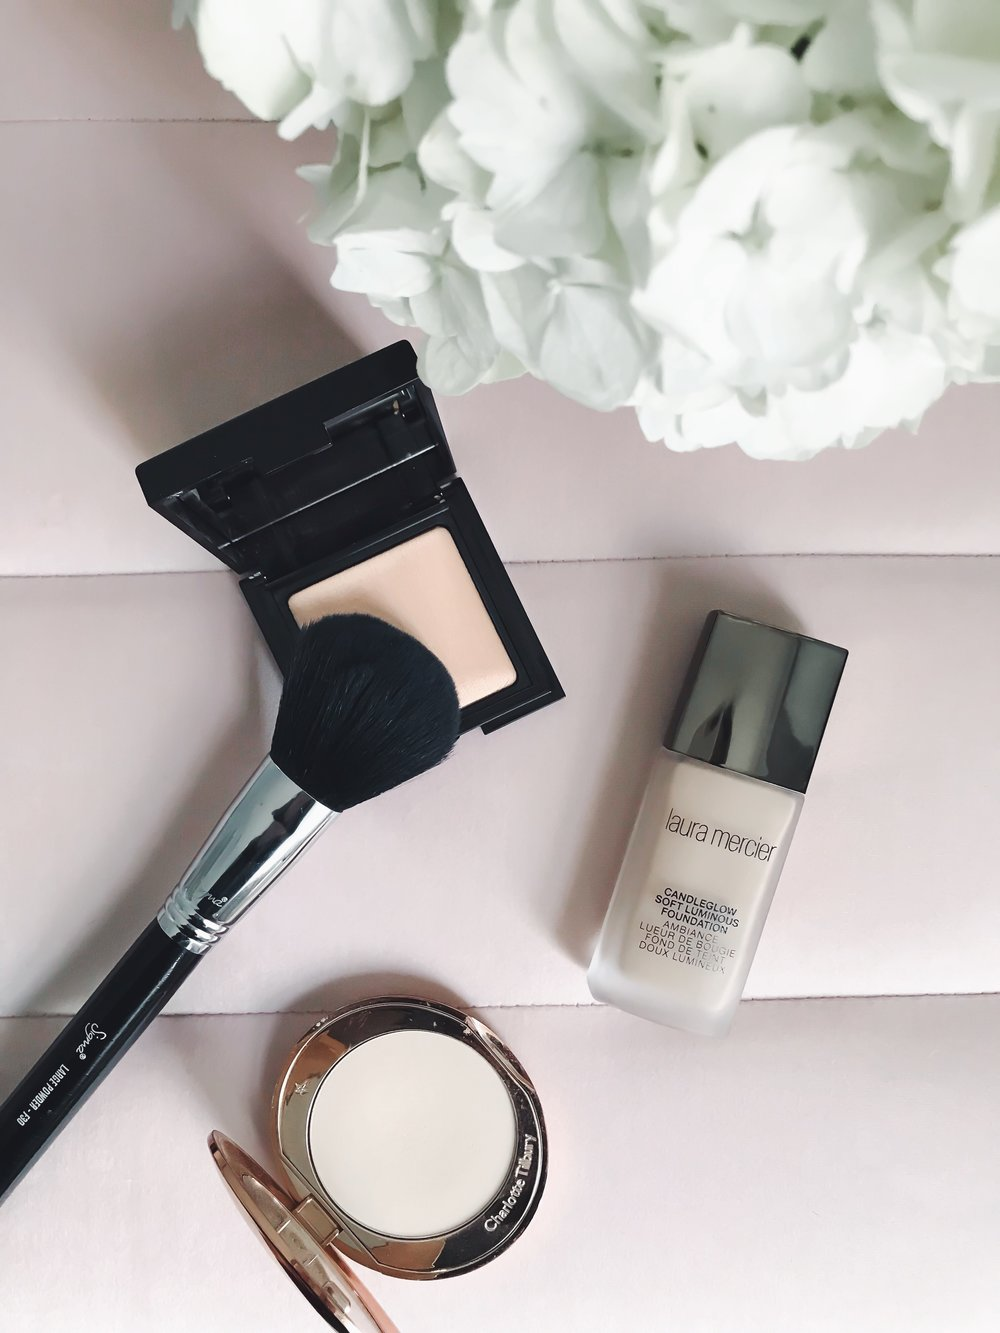 Recent Beauty Buys | Pine Barren Beauty | Laura Mercier foundation, Charlotte Tilbury setting powder, Laura Mercier setting powder, beauty product review, beauty product flat lay